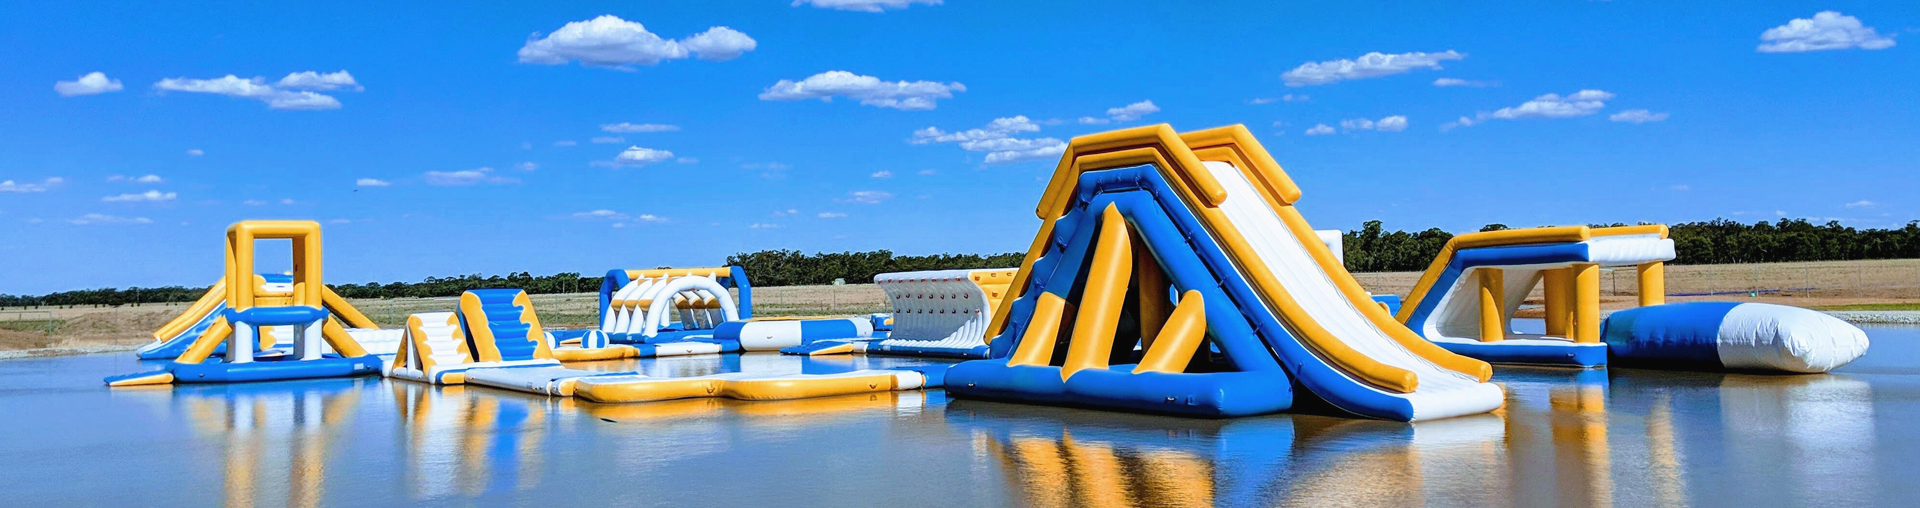 news-inflatable water parks,floating water park,inflatable water playground-Bouncia-img